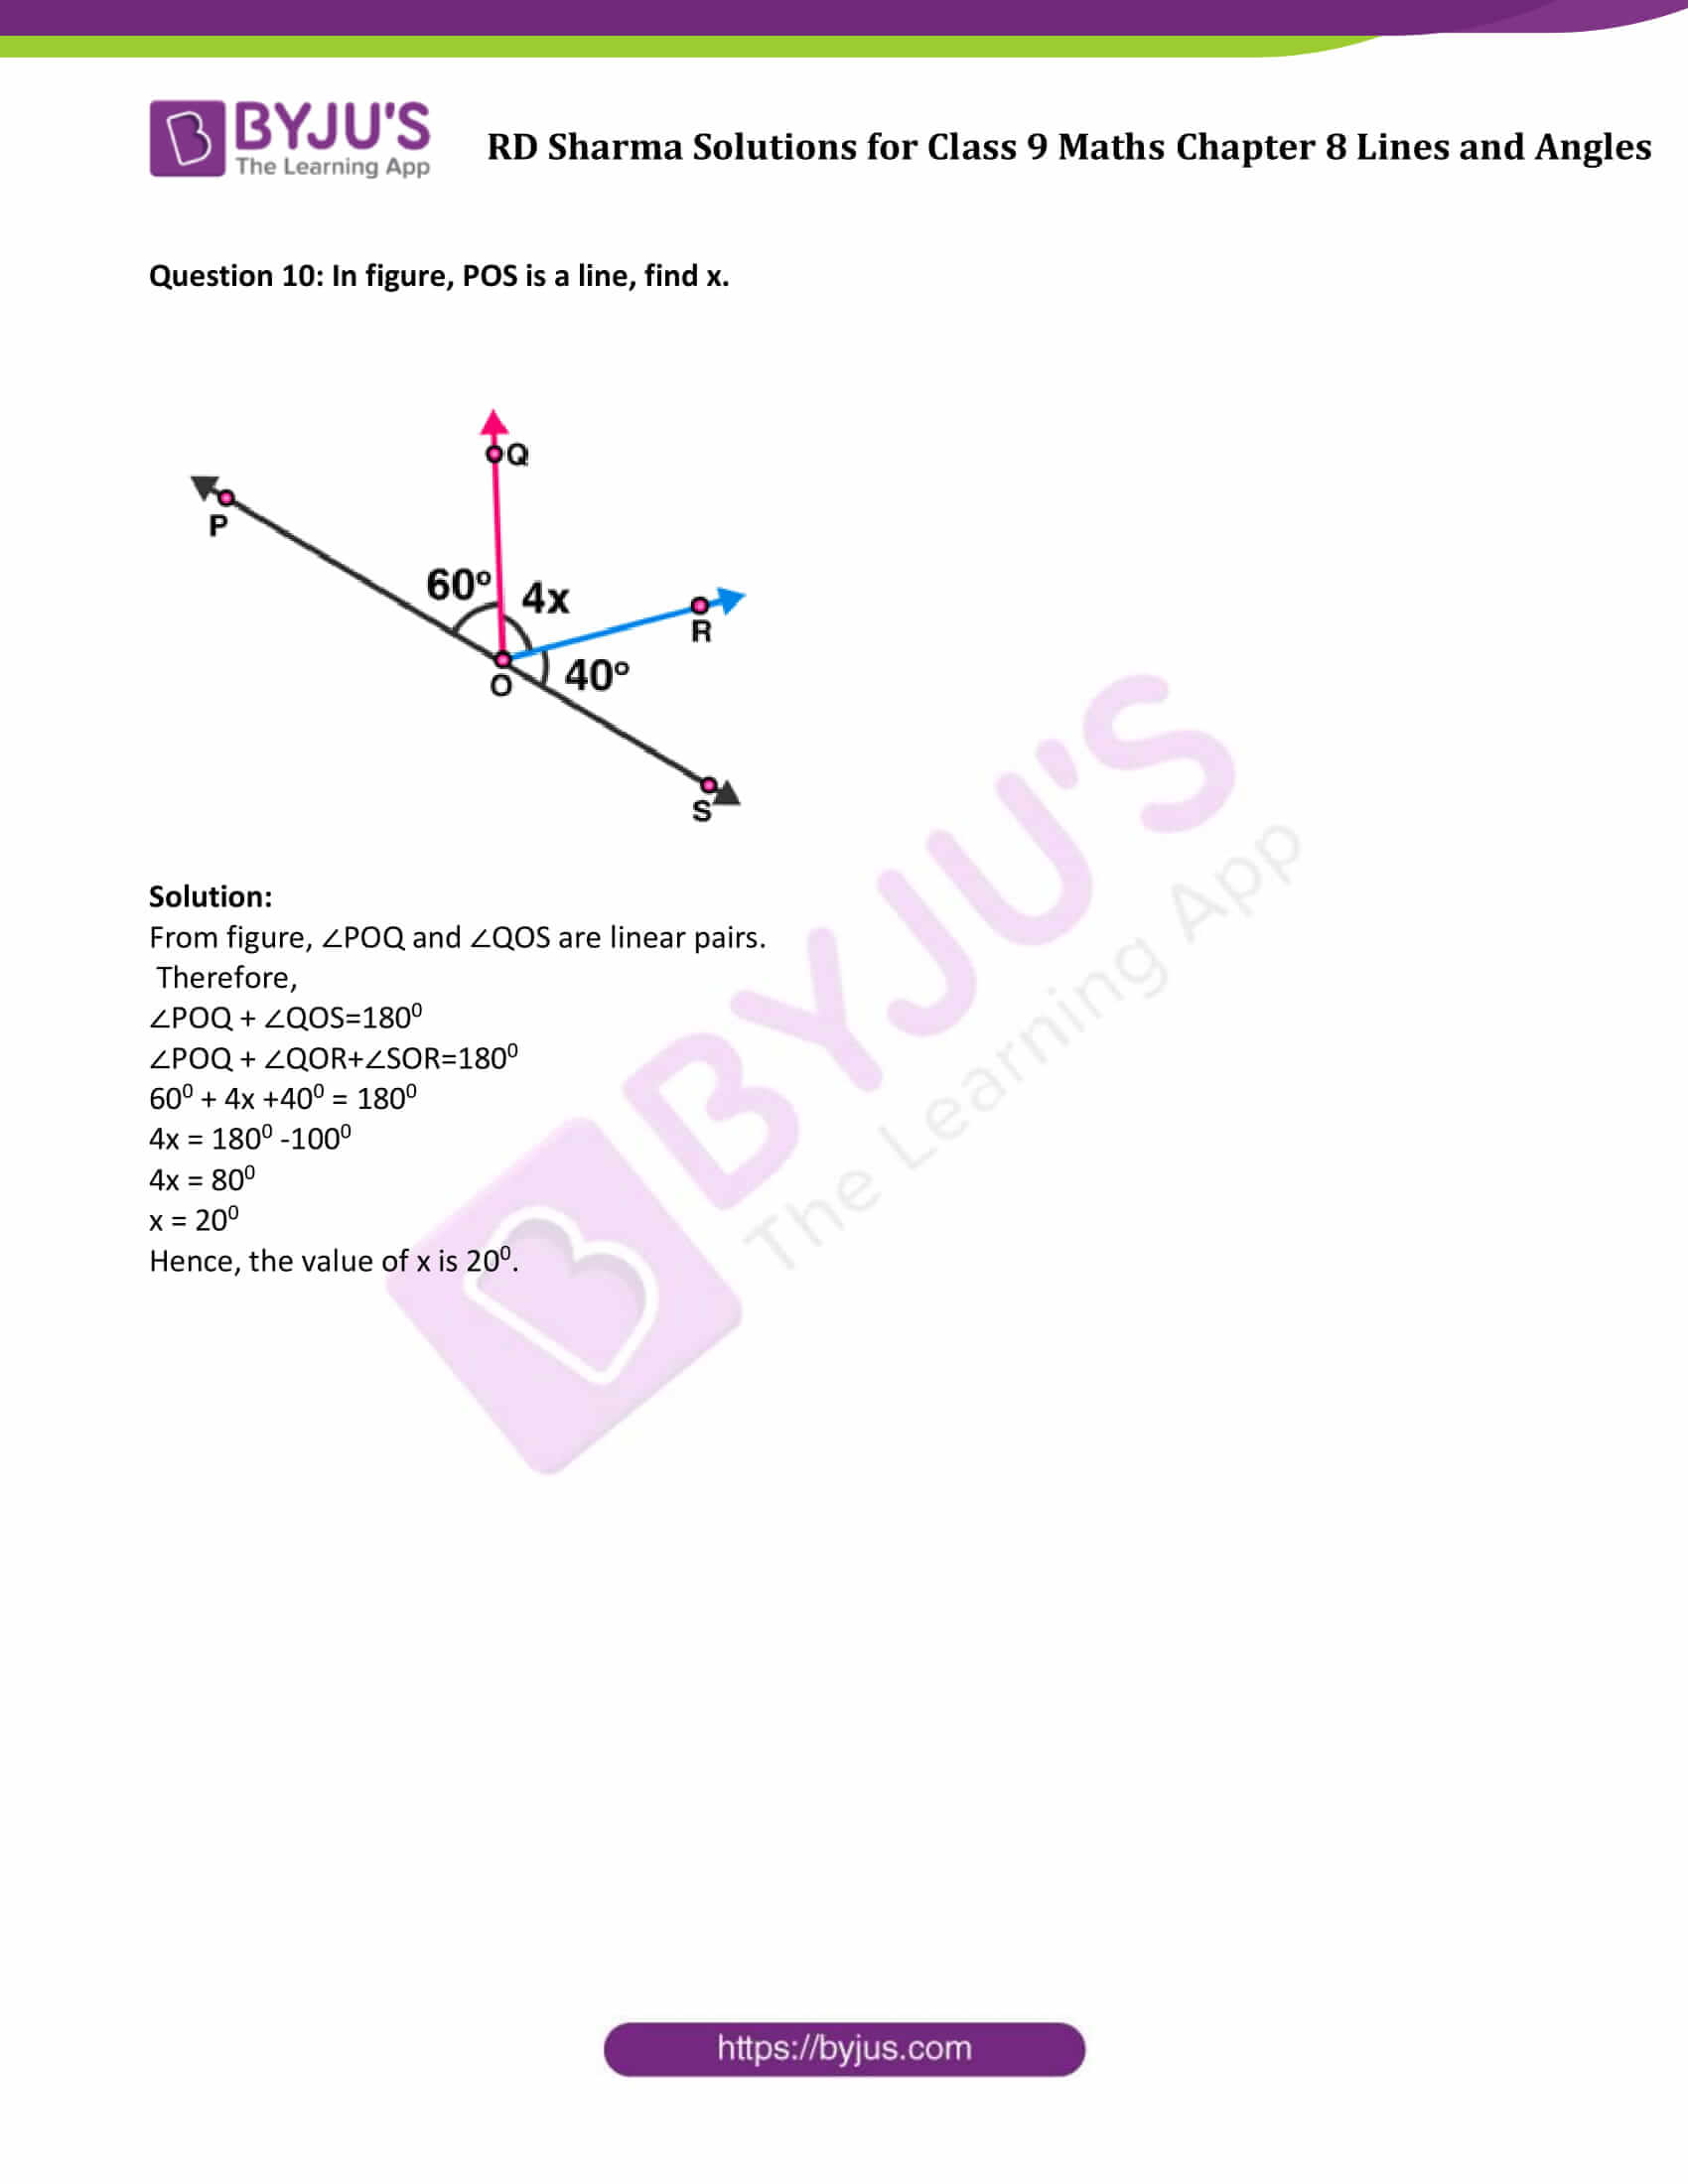 RD Sharma Solution class 9 Maths Chapter 8 Lines and Angles 10